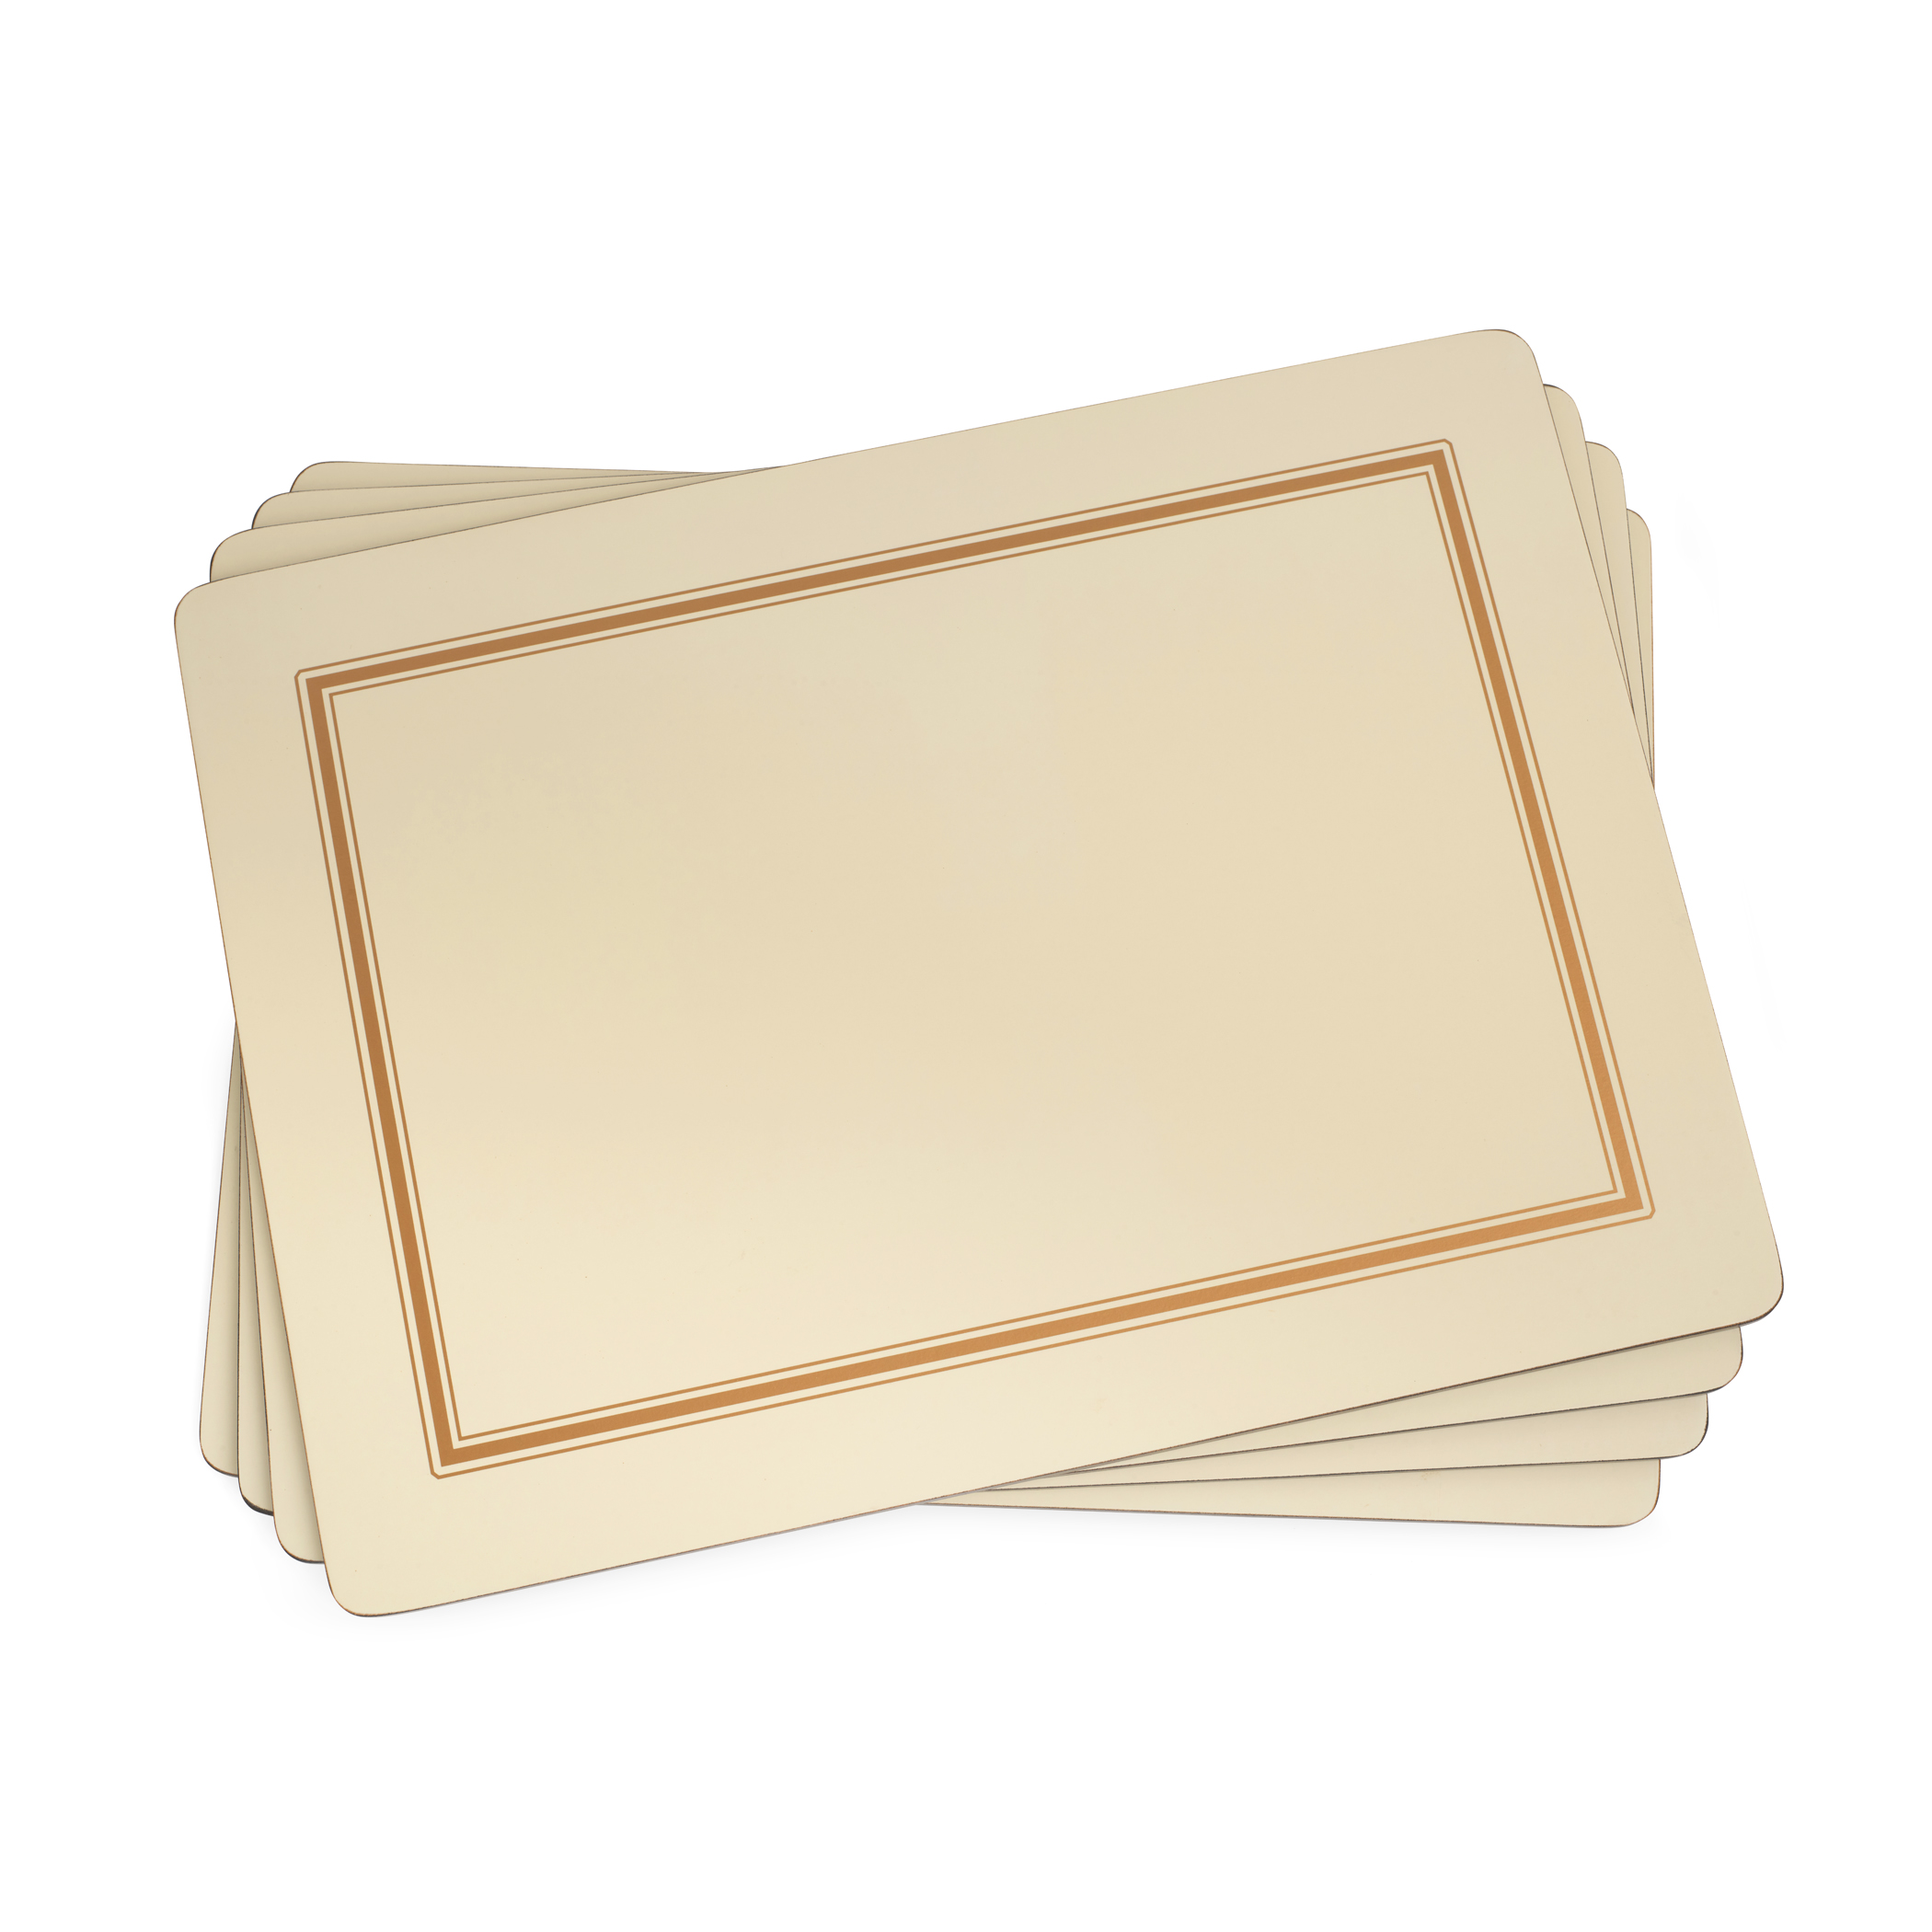 Pimpernel Classic Cream Placemats Set of 4 image number 0